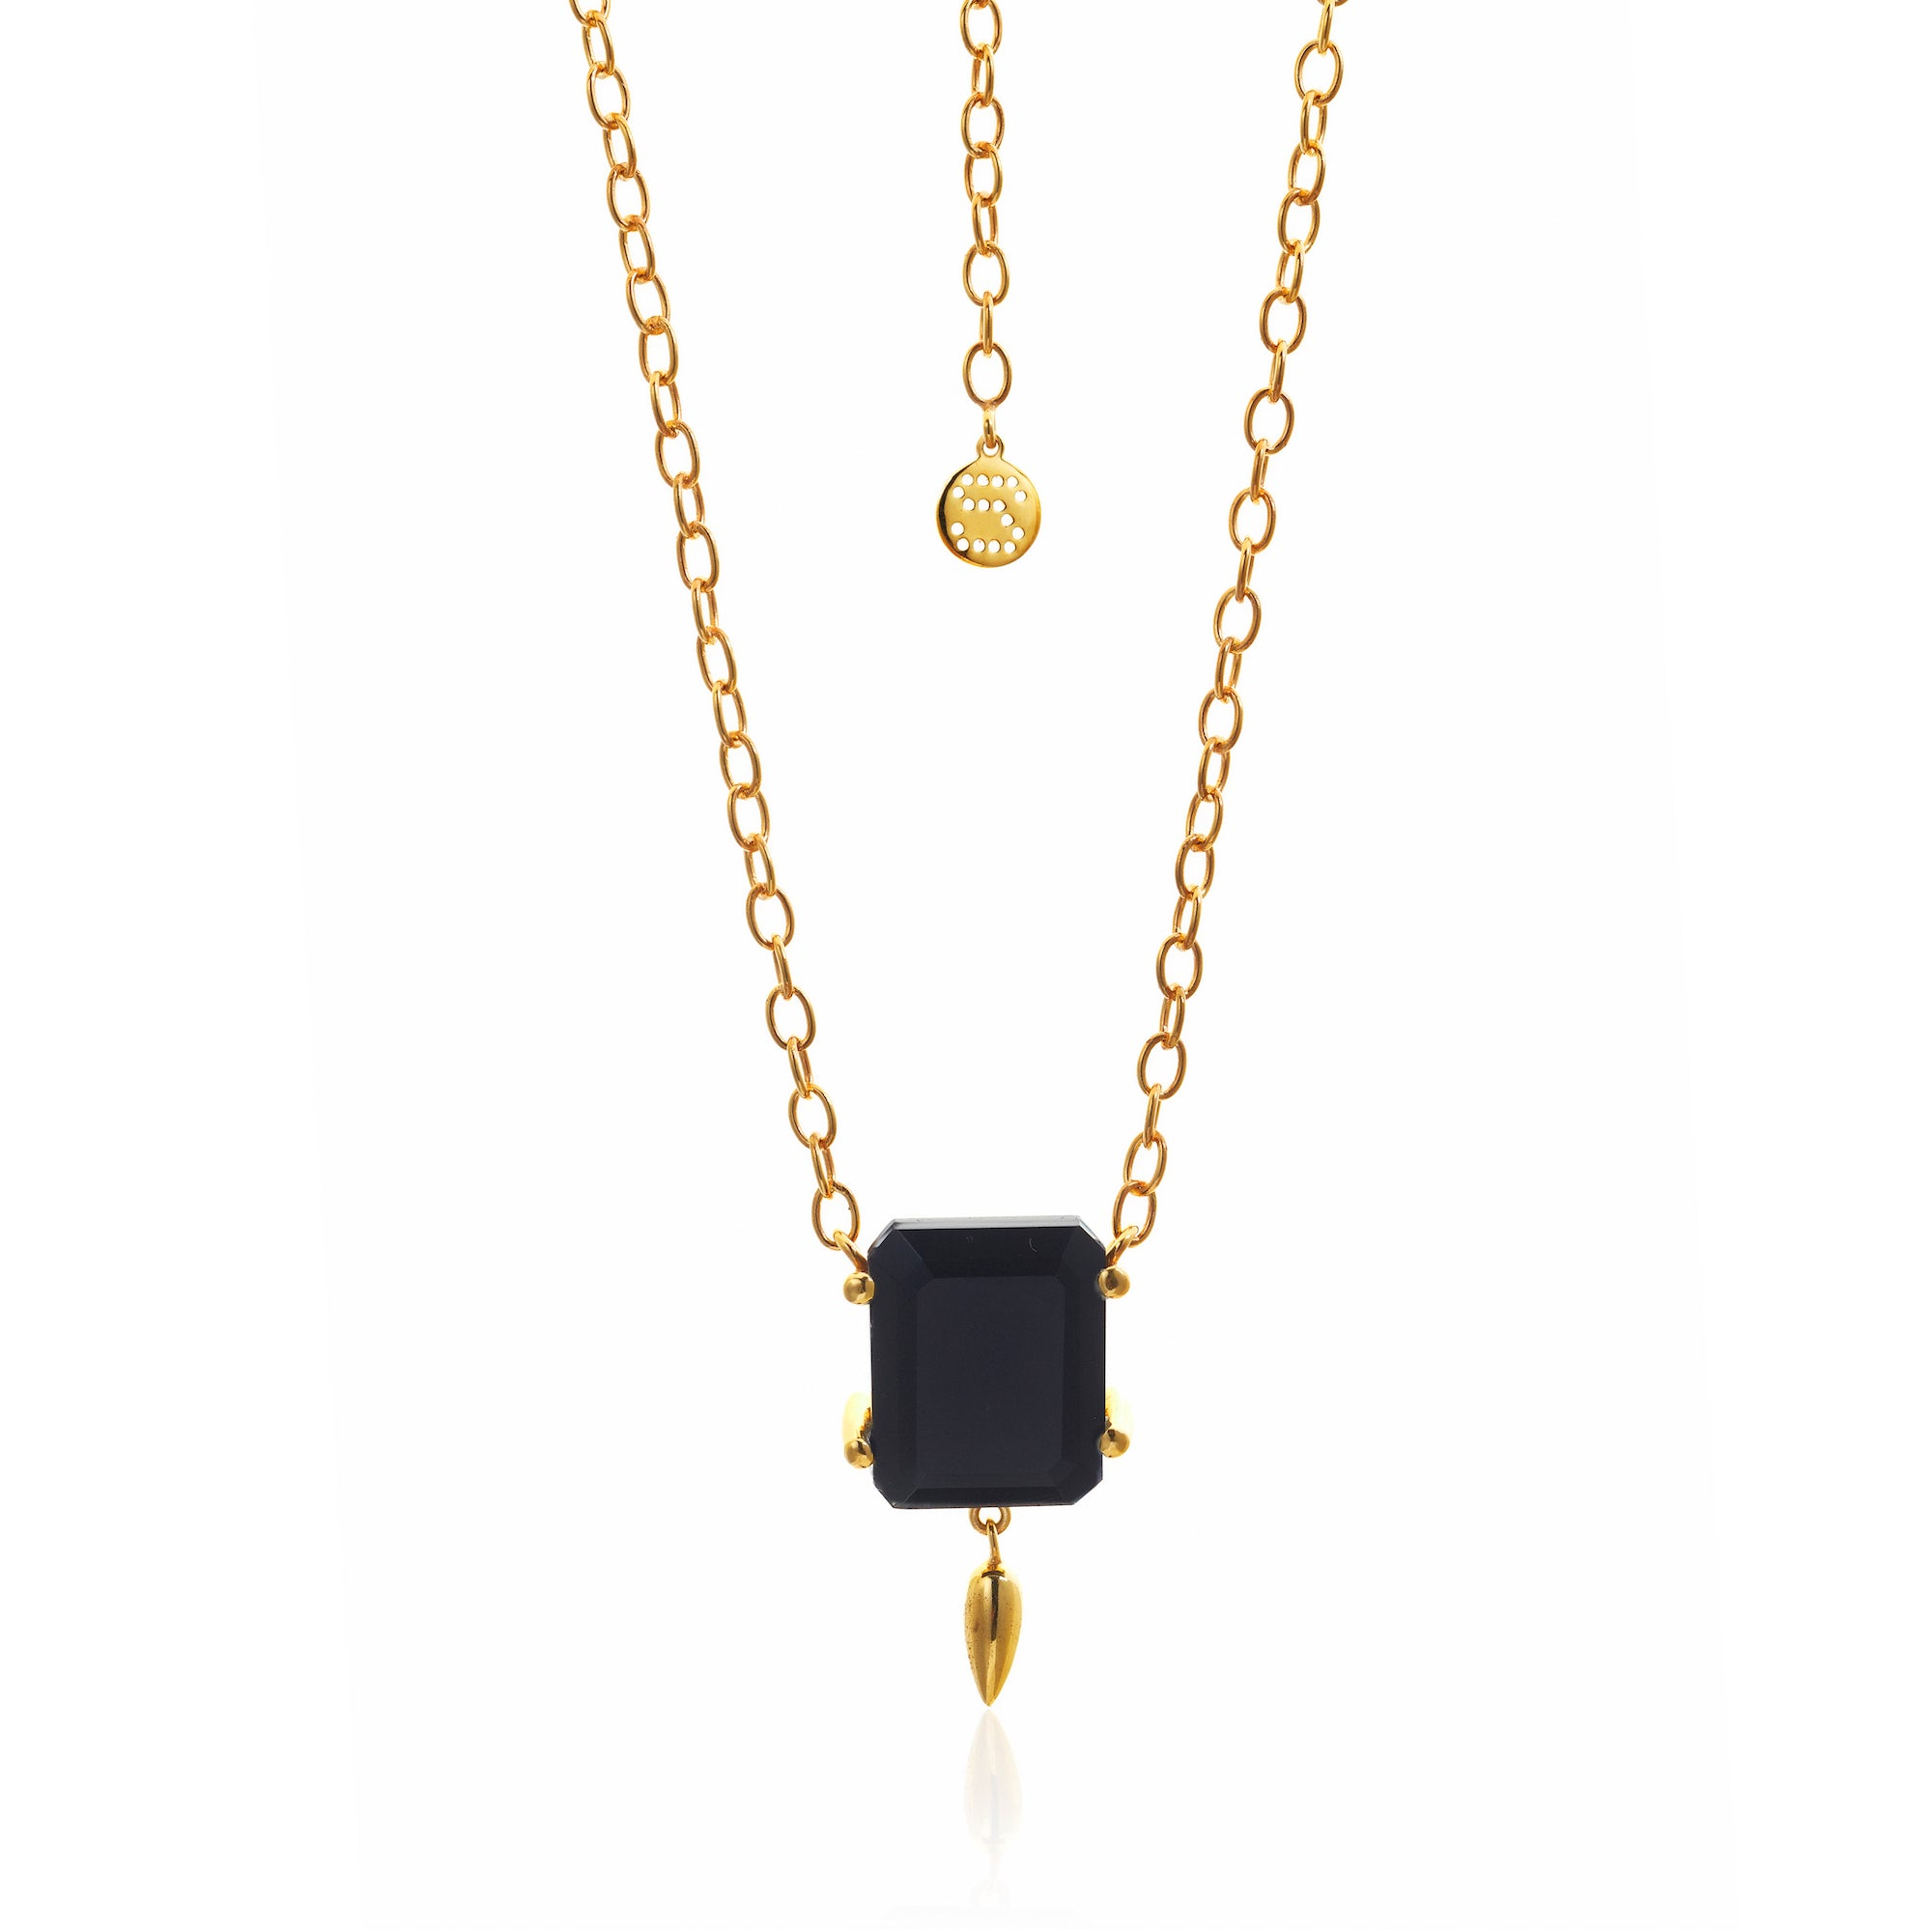 Silk&Steel Jewellery Prima Donna Black Spinel and Gold Necklace from La Dolce Vita Collection